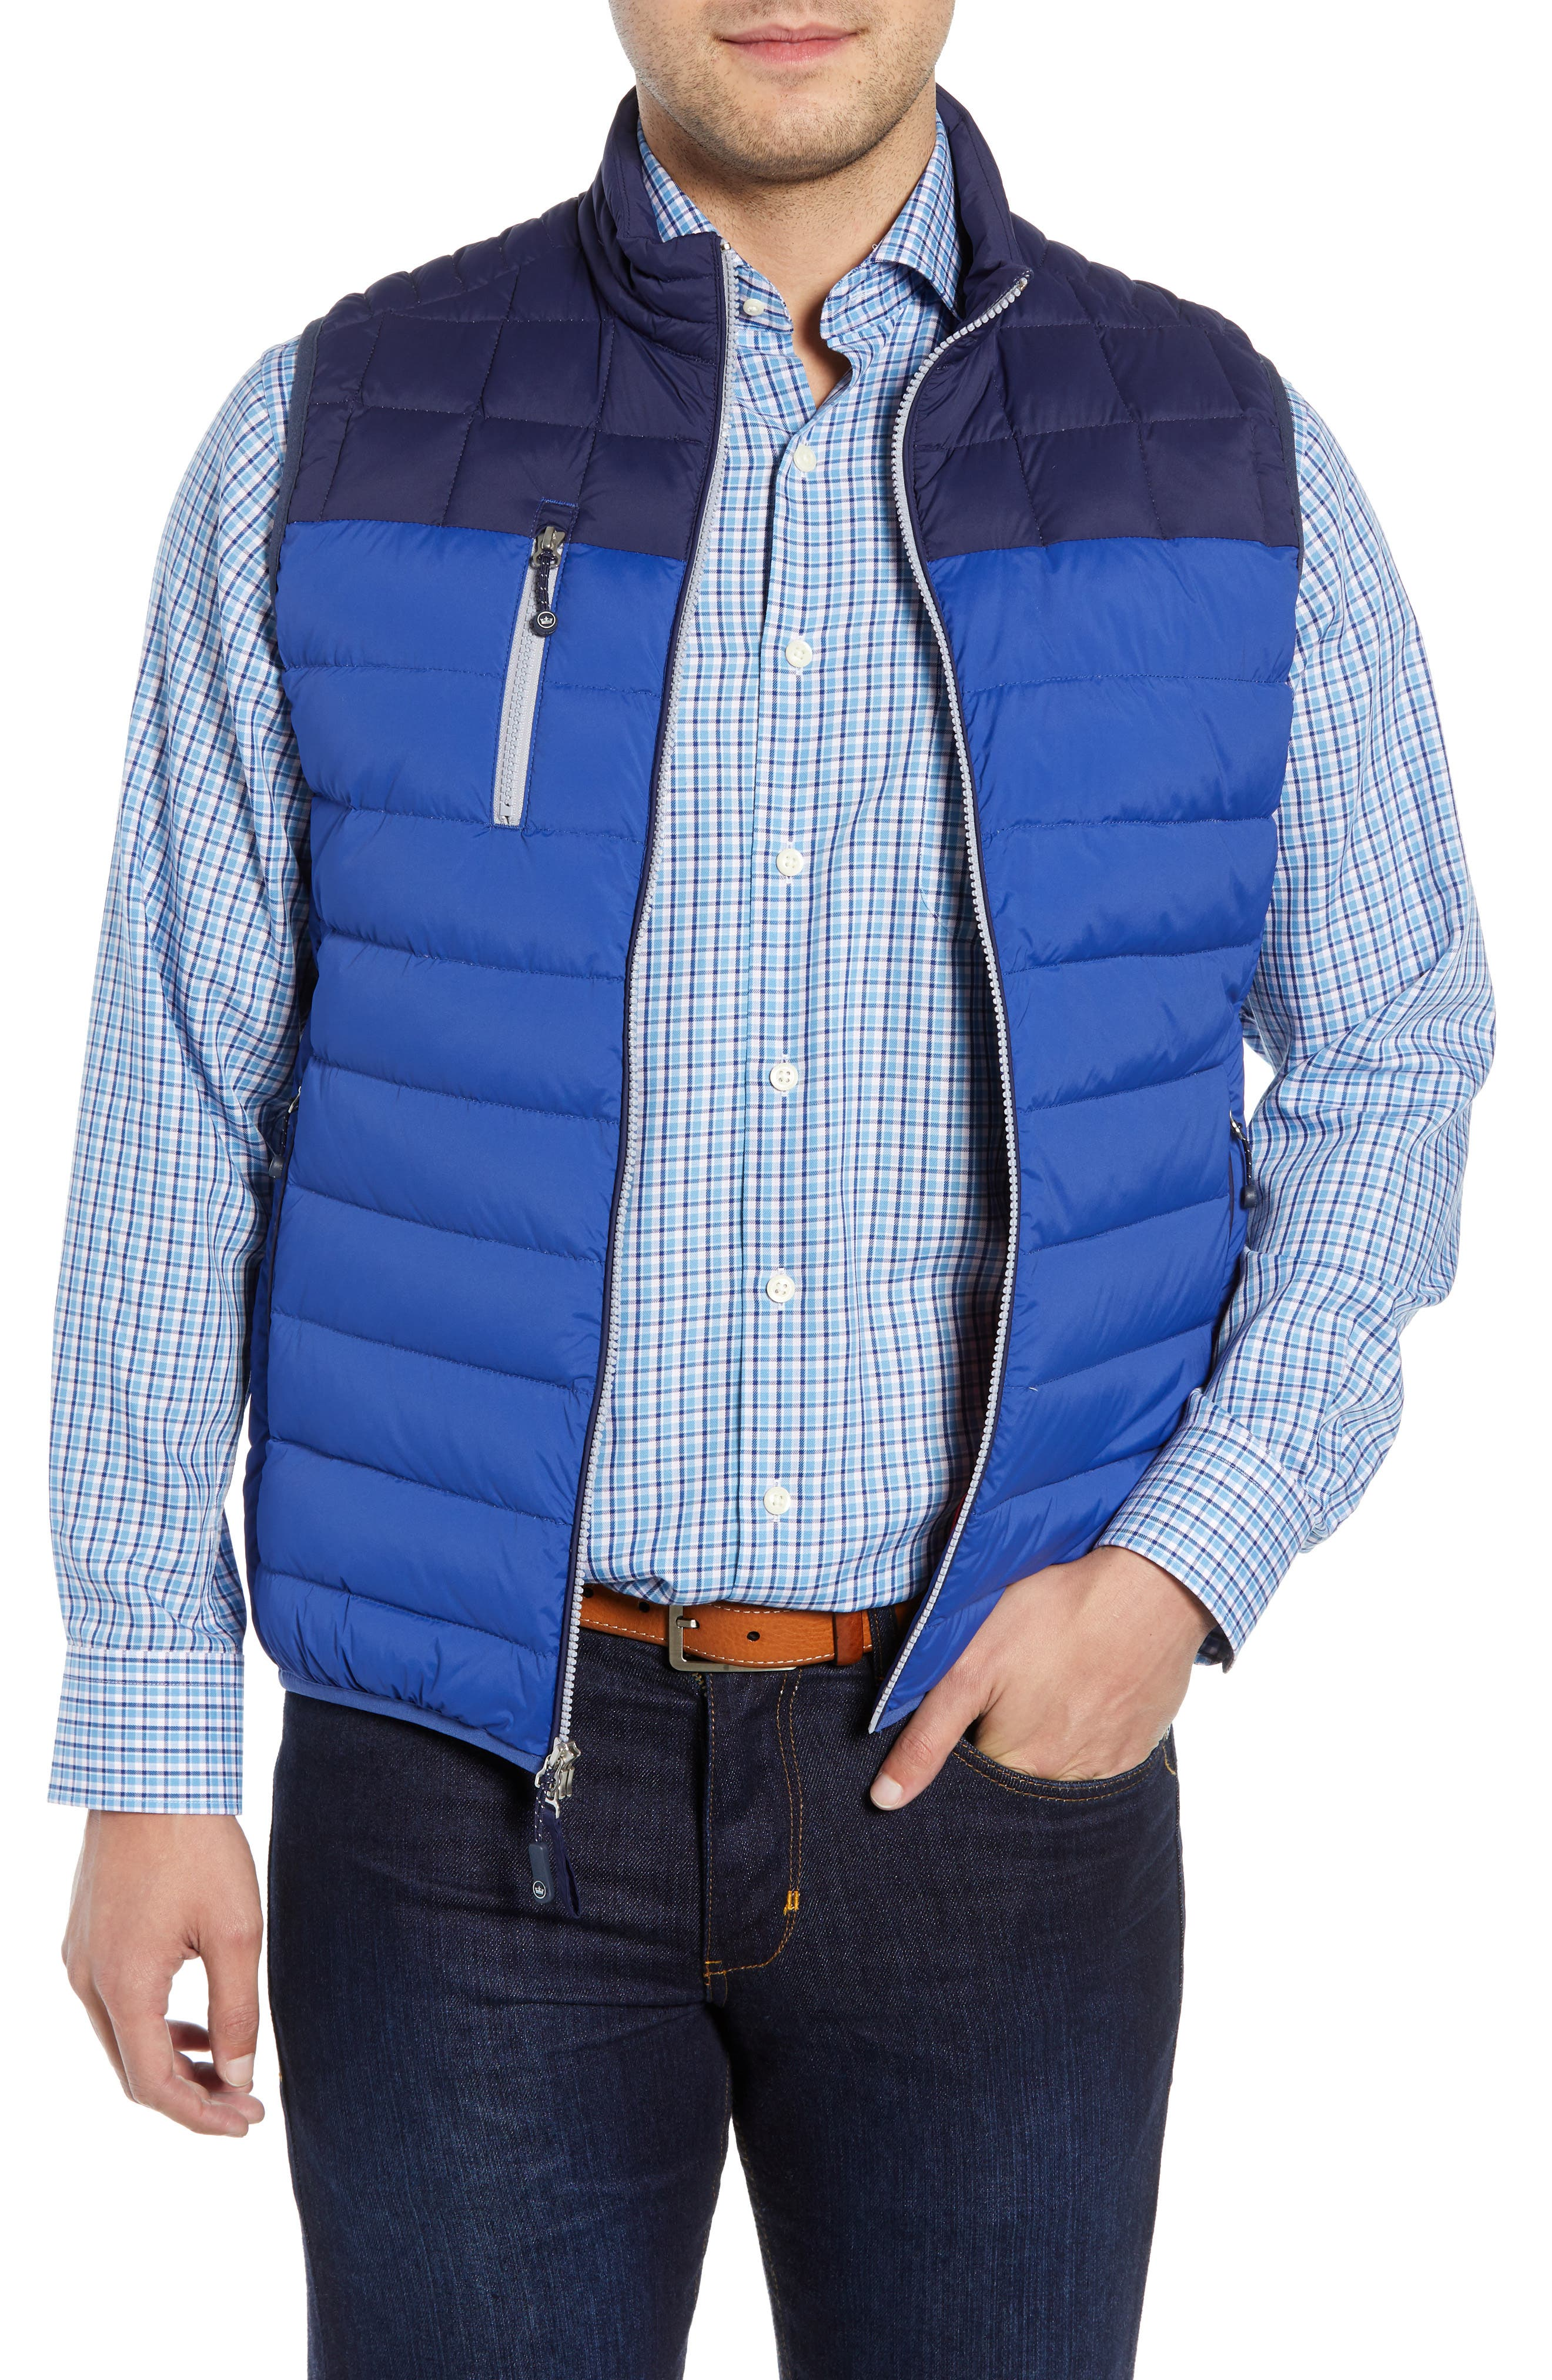 PETER MILLAR Sail Classic Fit Puffer Vest, Main, color, SAIL